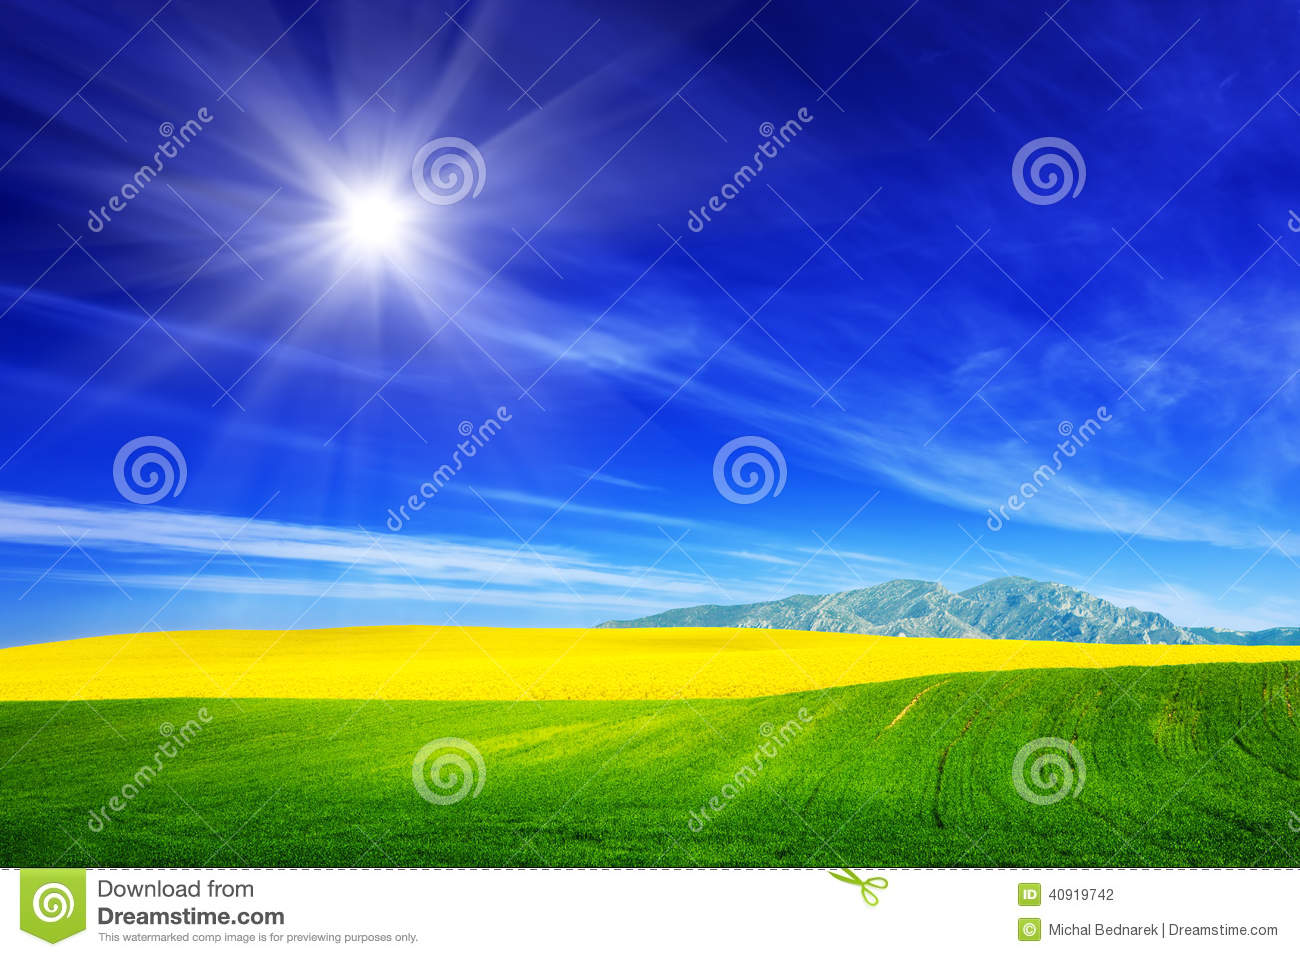 Spring field of green grass and yellow flowers, rape. Blue sunny sky